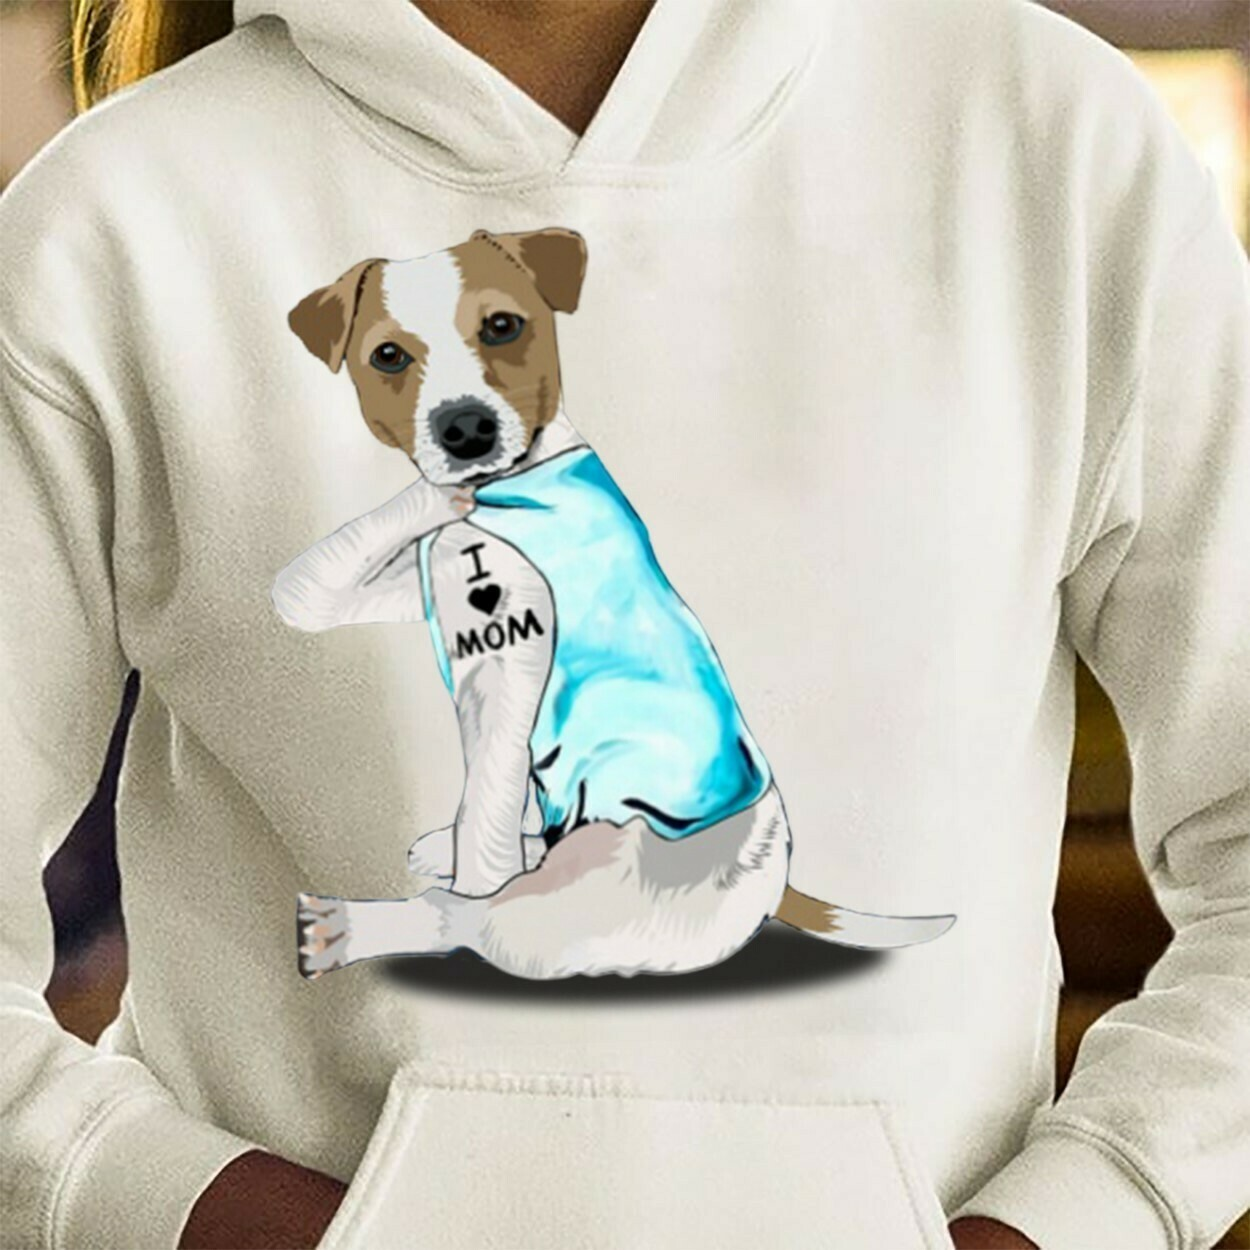 Jack Russel Dog Tattoos I Love Mom Funny Shirt T-Shirt Hoodie Sweatshirt Sweater Tee Kids Youth Gifts Jolly Family Gifts